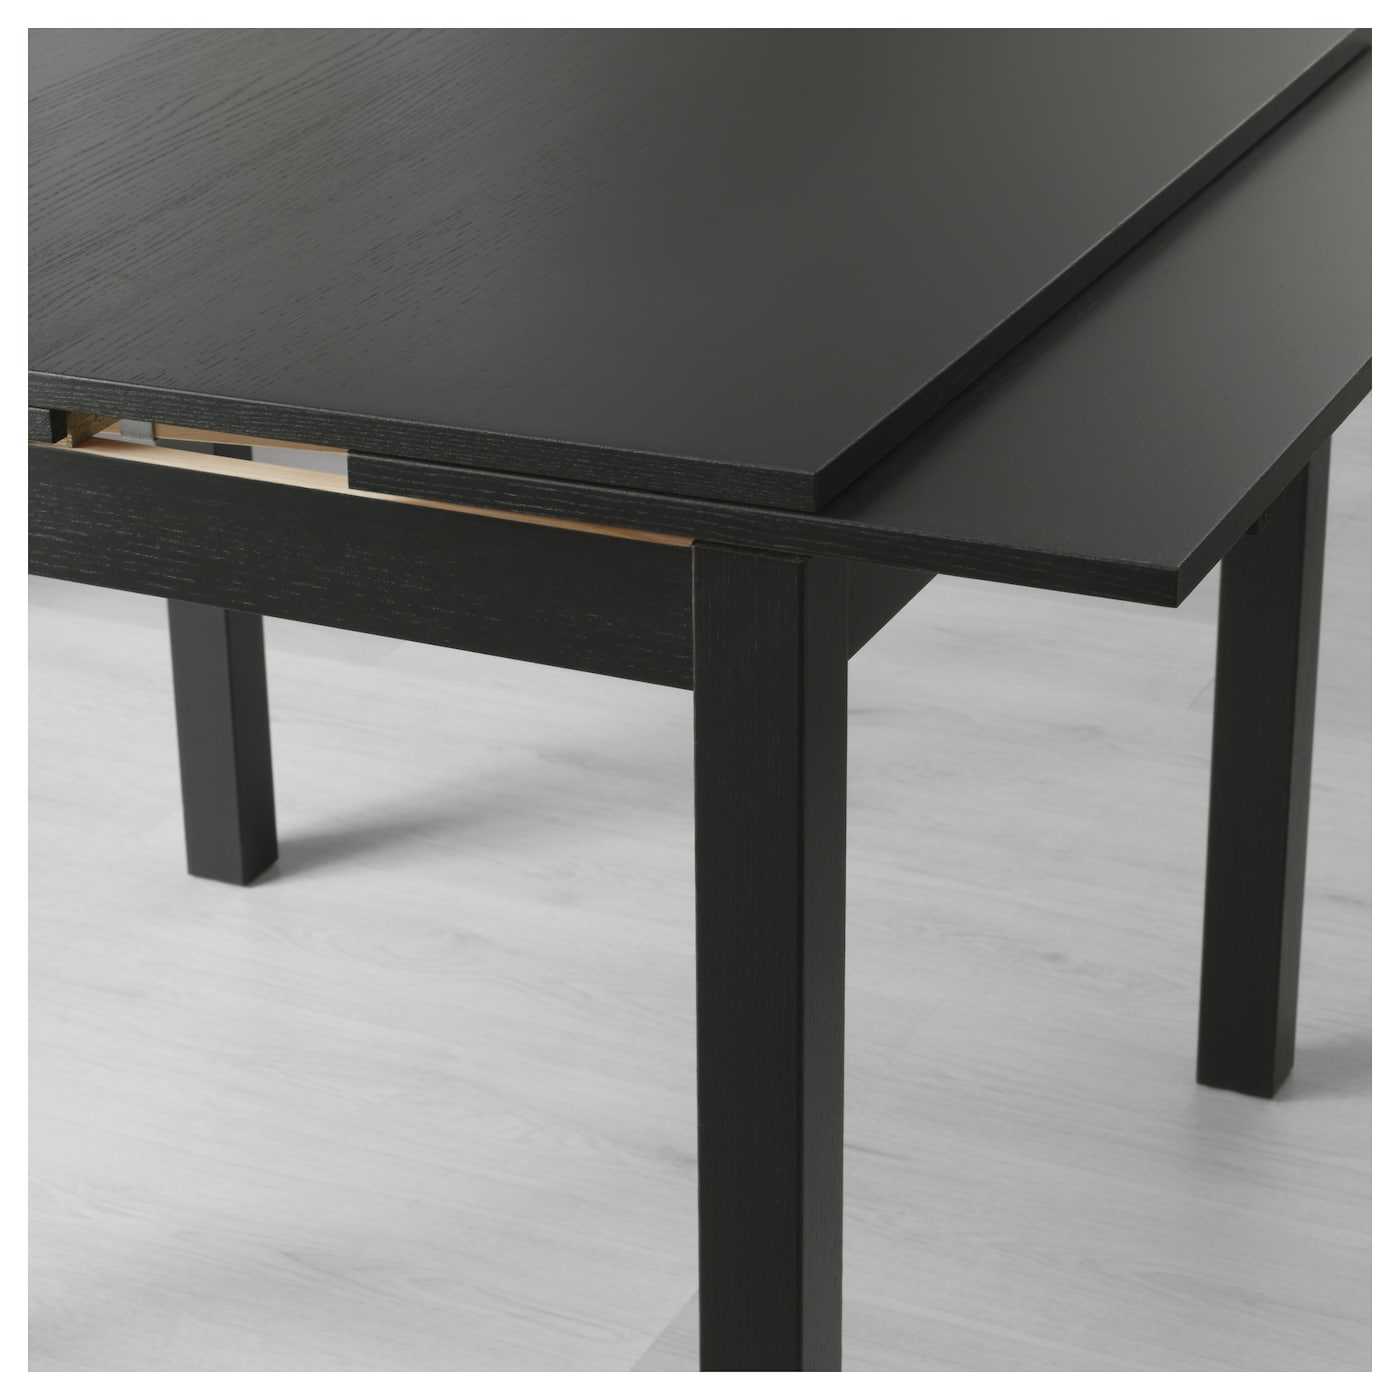 Bjursta extendable table brown black 90 129 168x90 cm ikea - Table carree de salle a manger ...